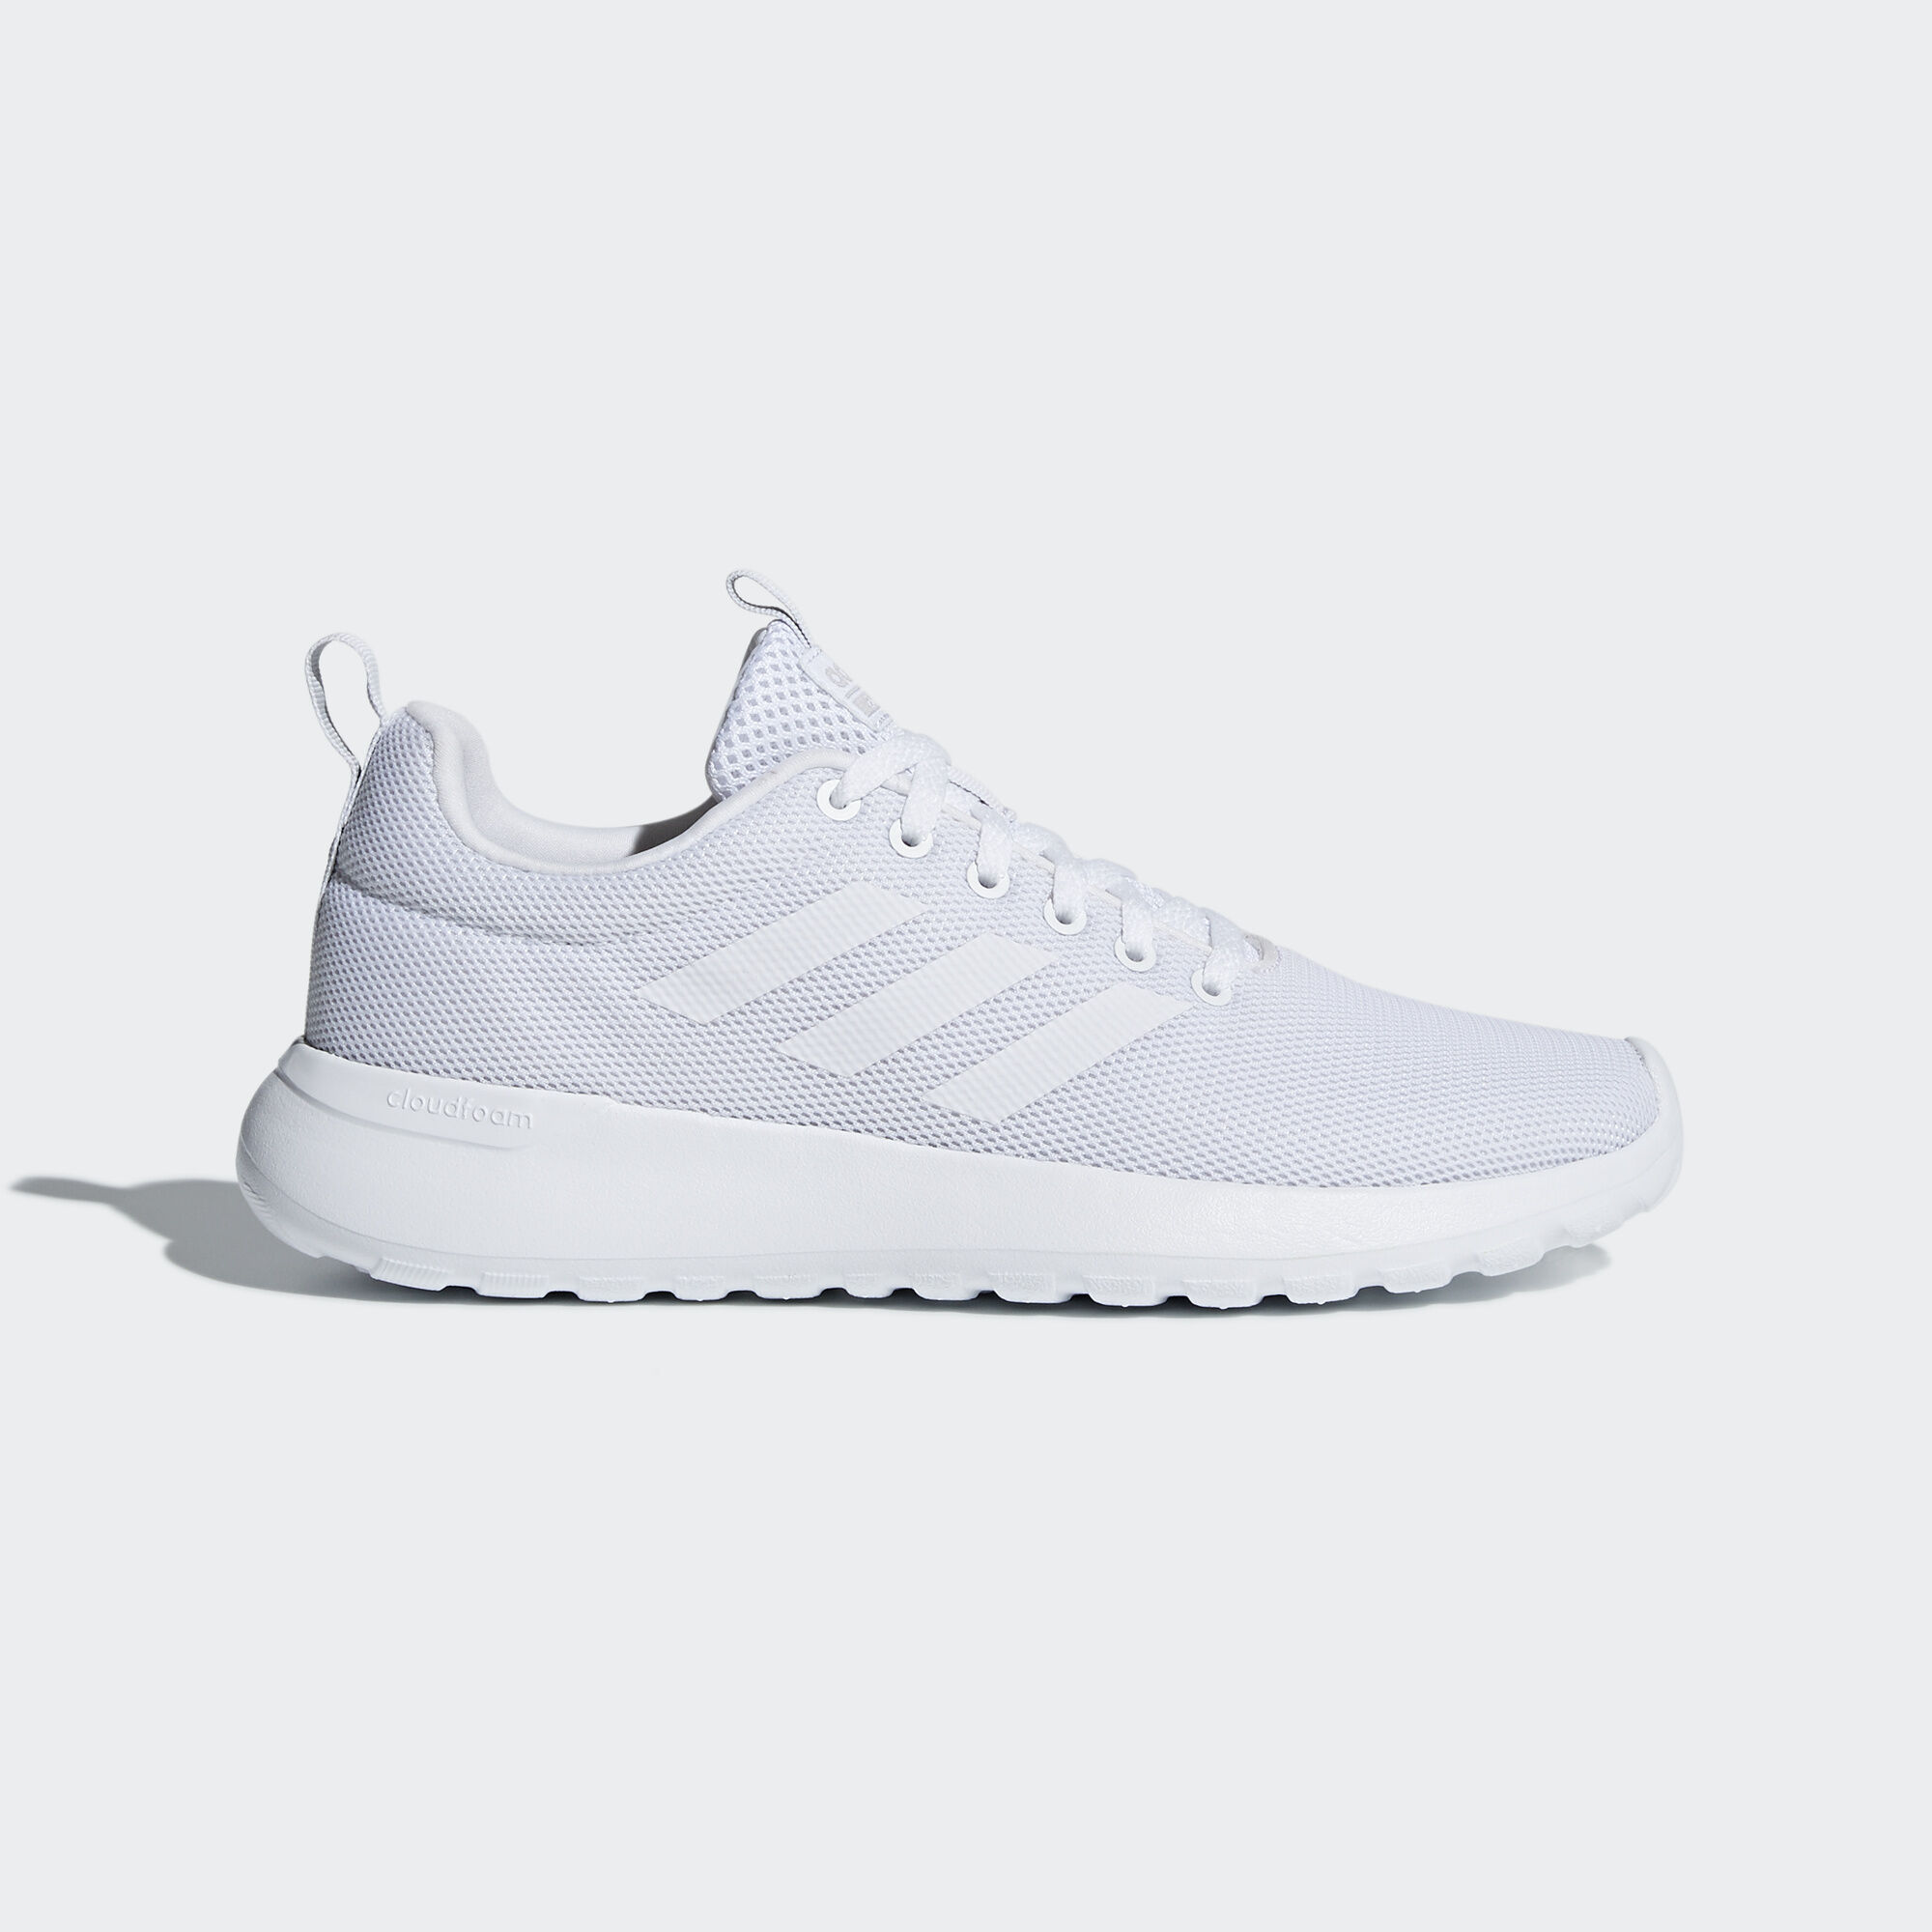 adidas Lite Racer CLN Chaussures Blanc adidas Asia Middle East